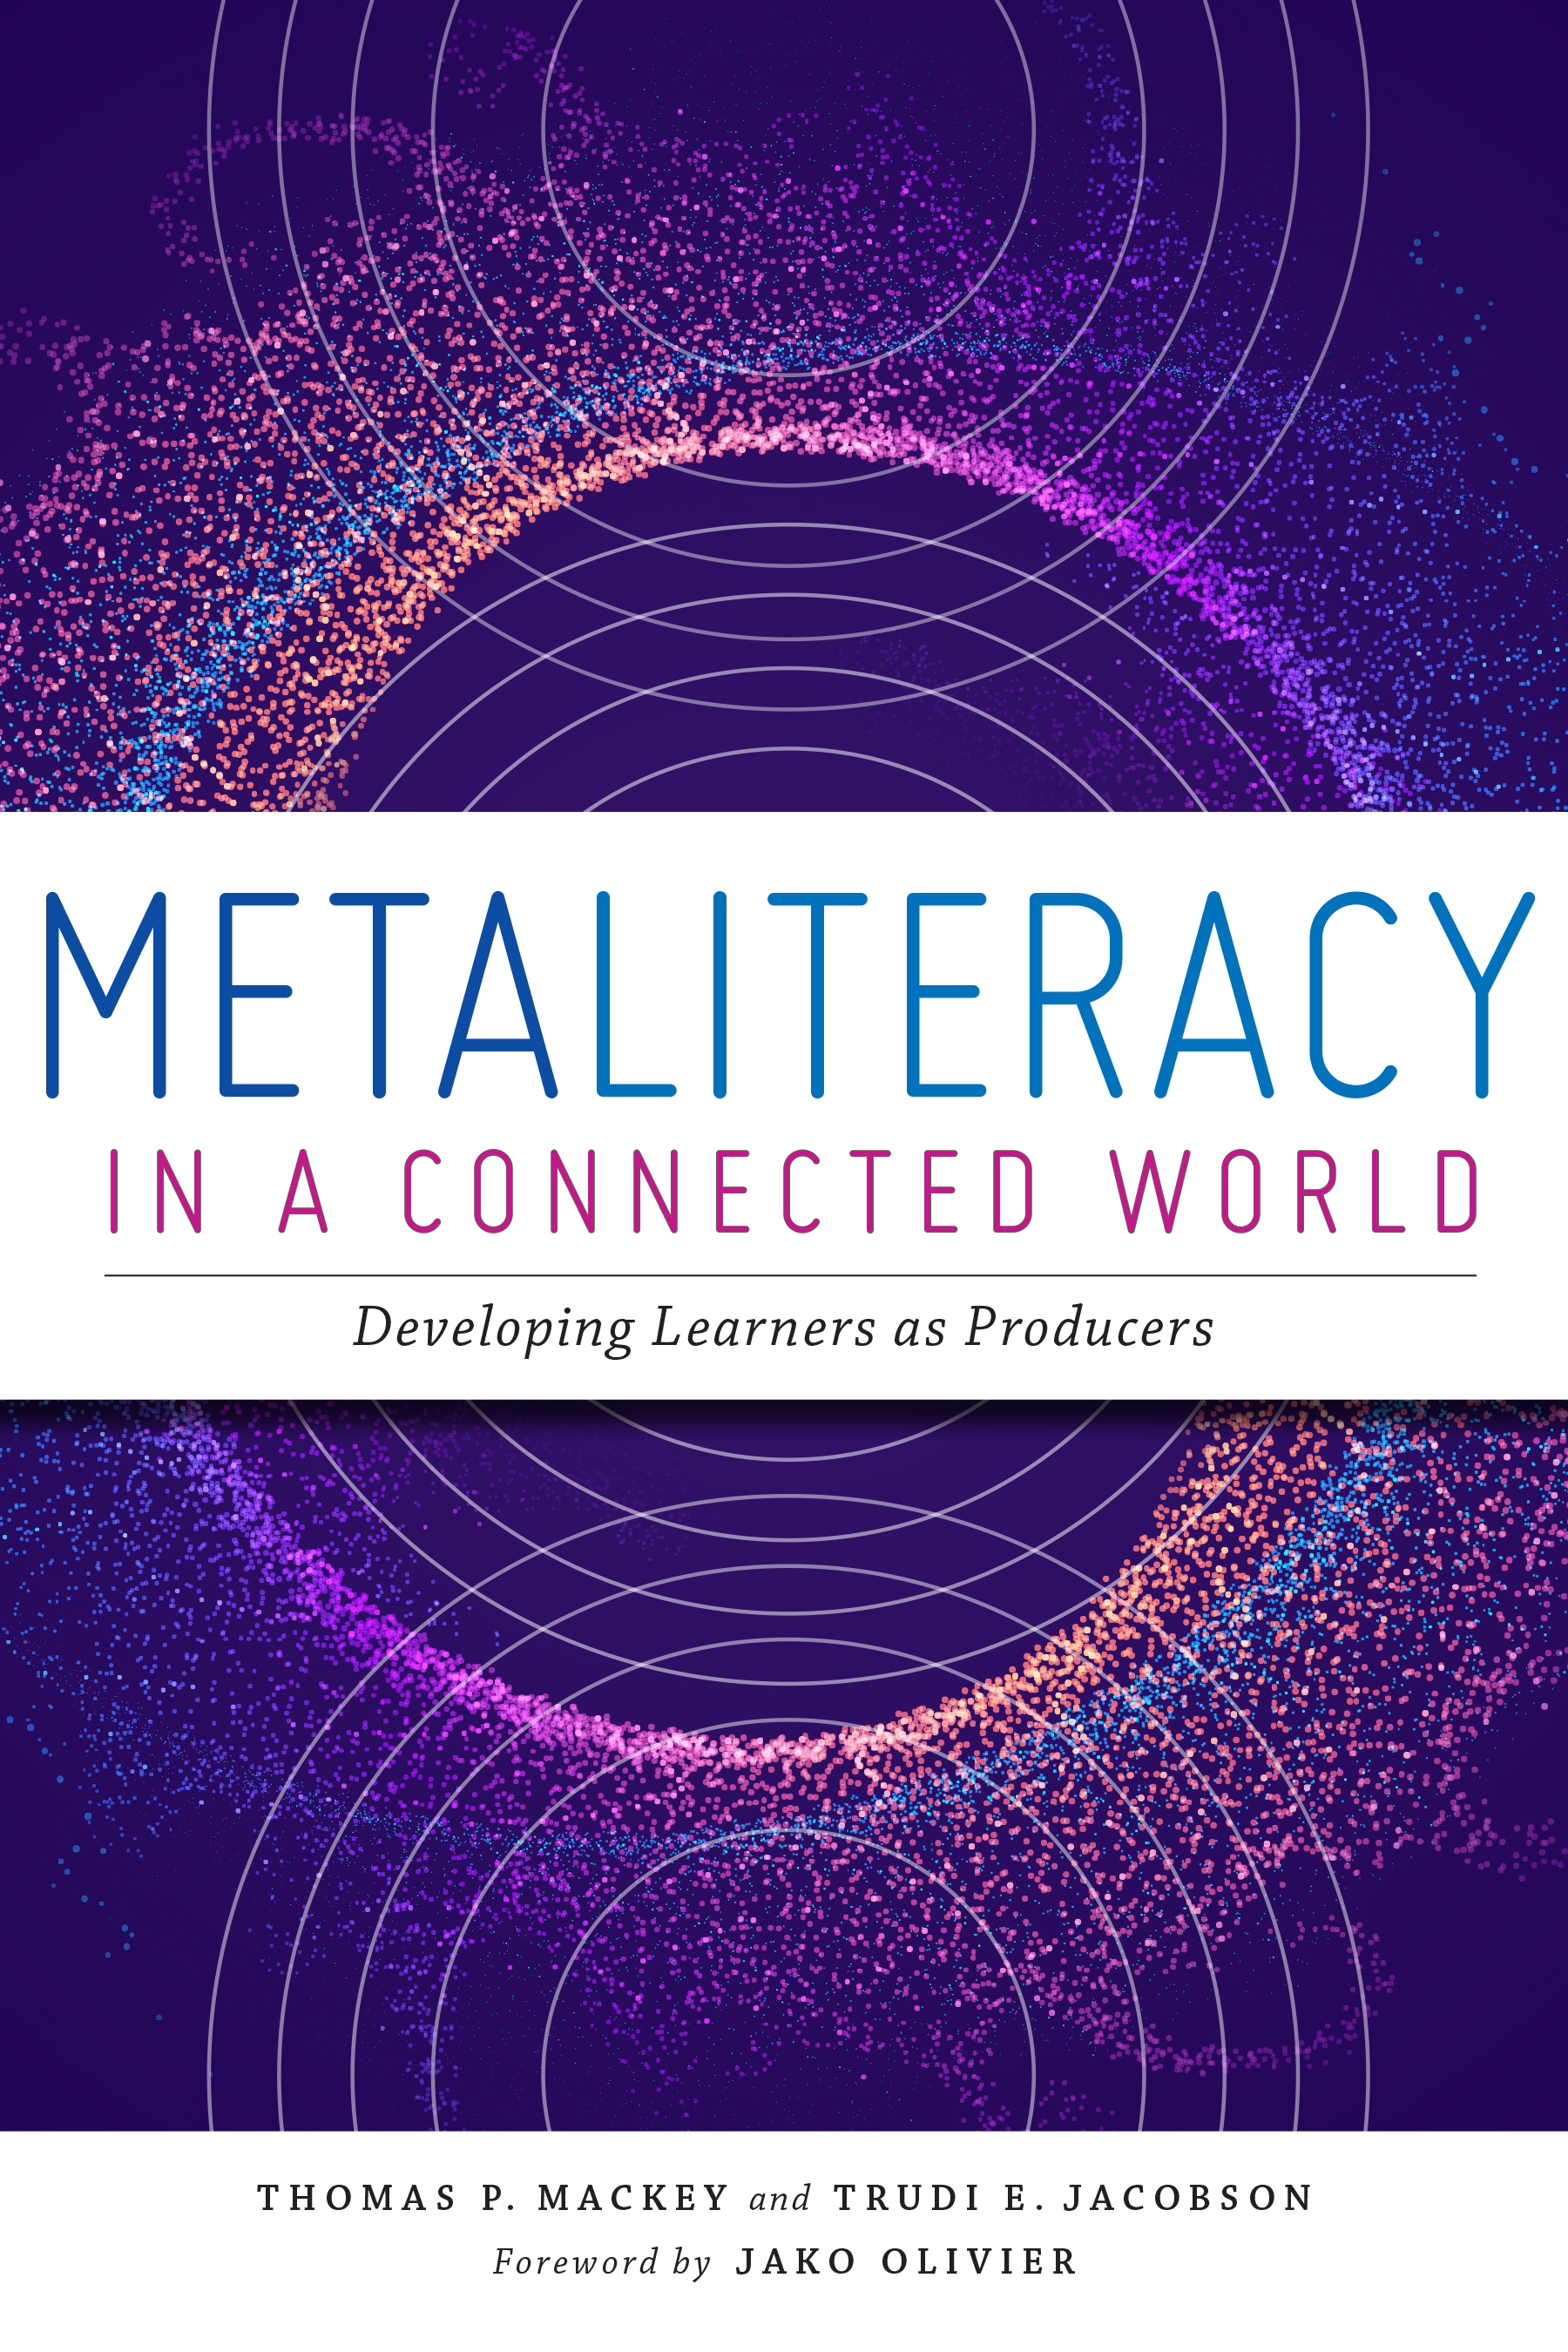 Metaliteracy in a Connected World: Developing Learners as Producers